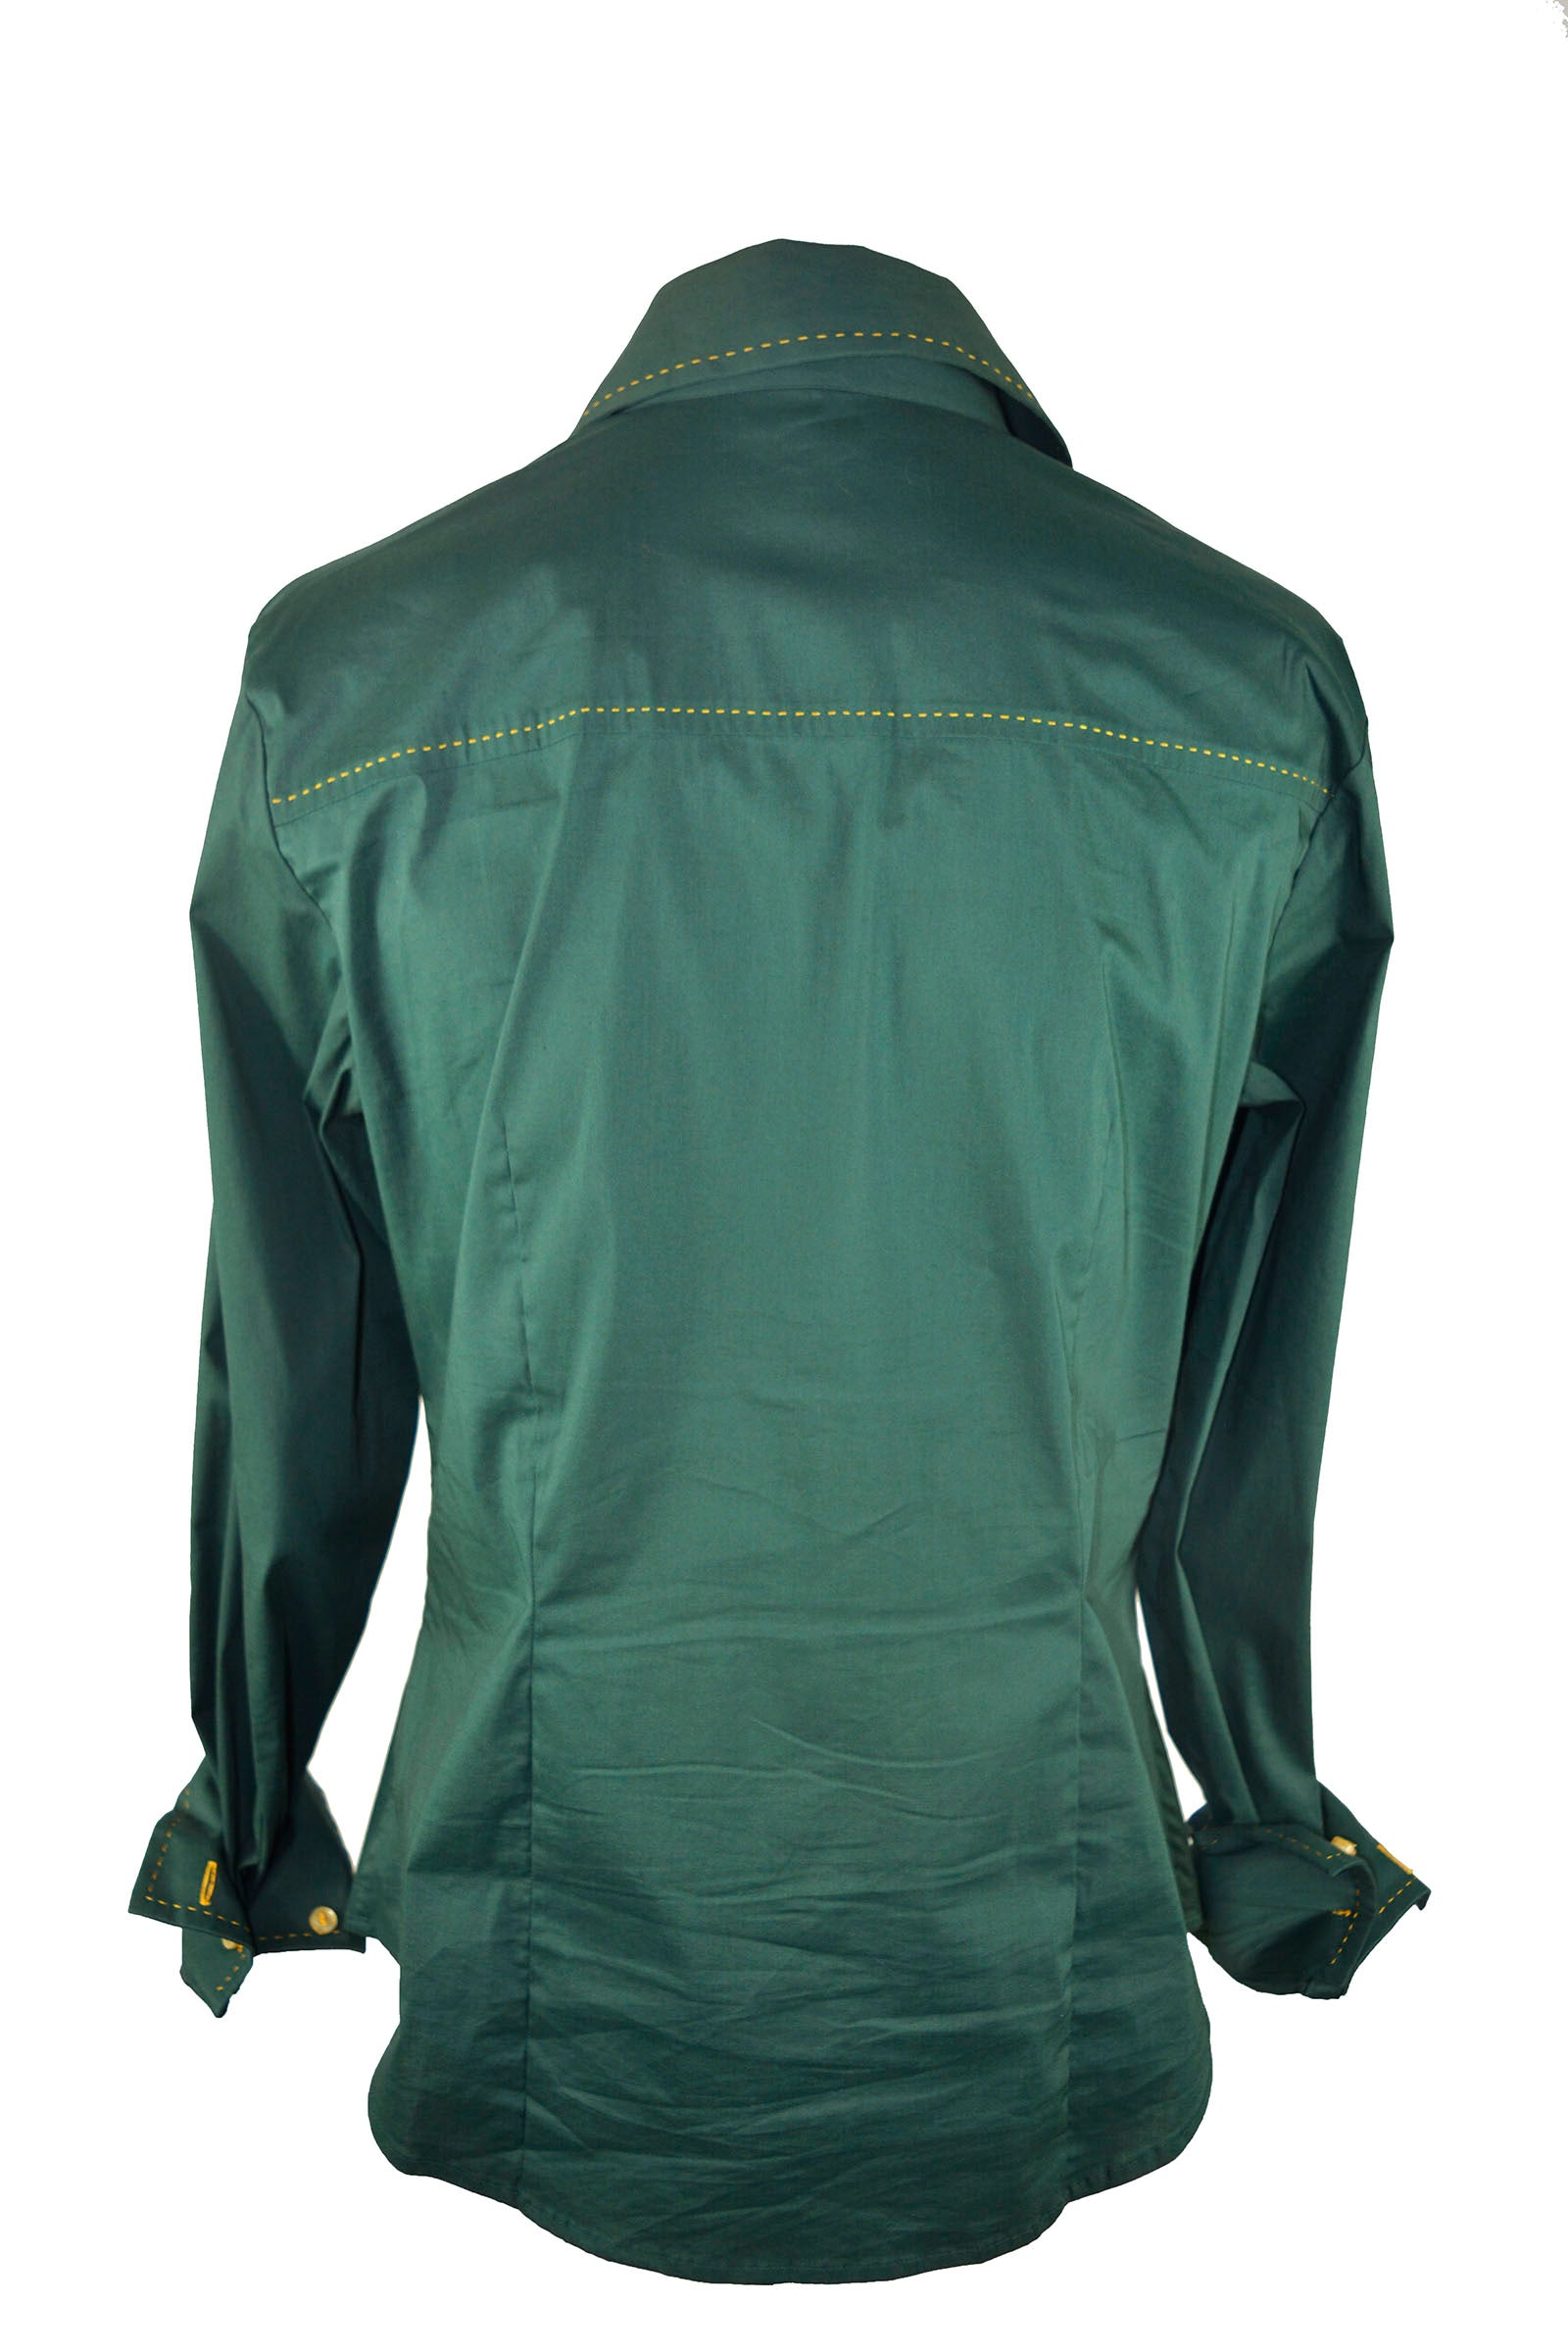 Burberry Dark Green Shirt with Yellow Stitches Size 40 (EU)